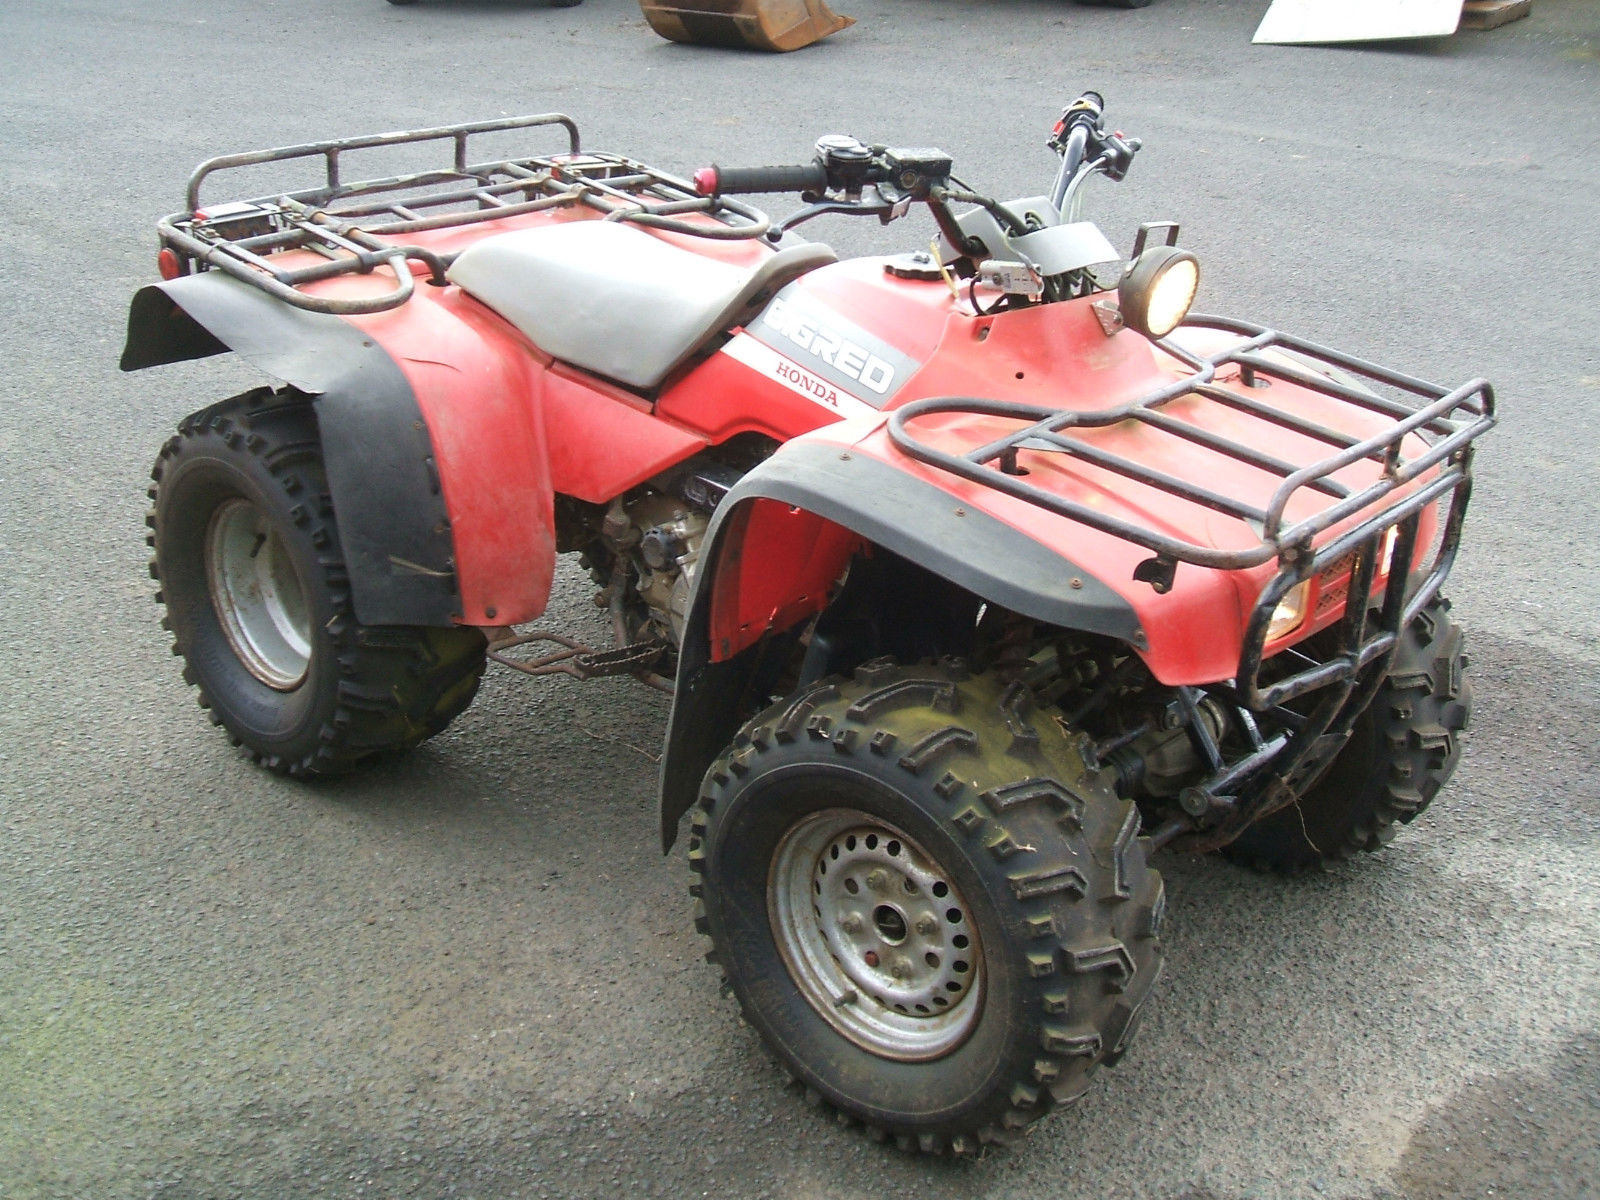 honda trx300ew bigred 4x4 quad bike. Black Bedroom Furniture Sets. Home Design Ideas